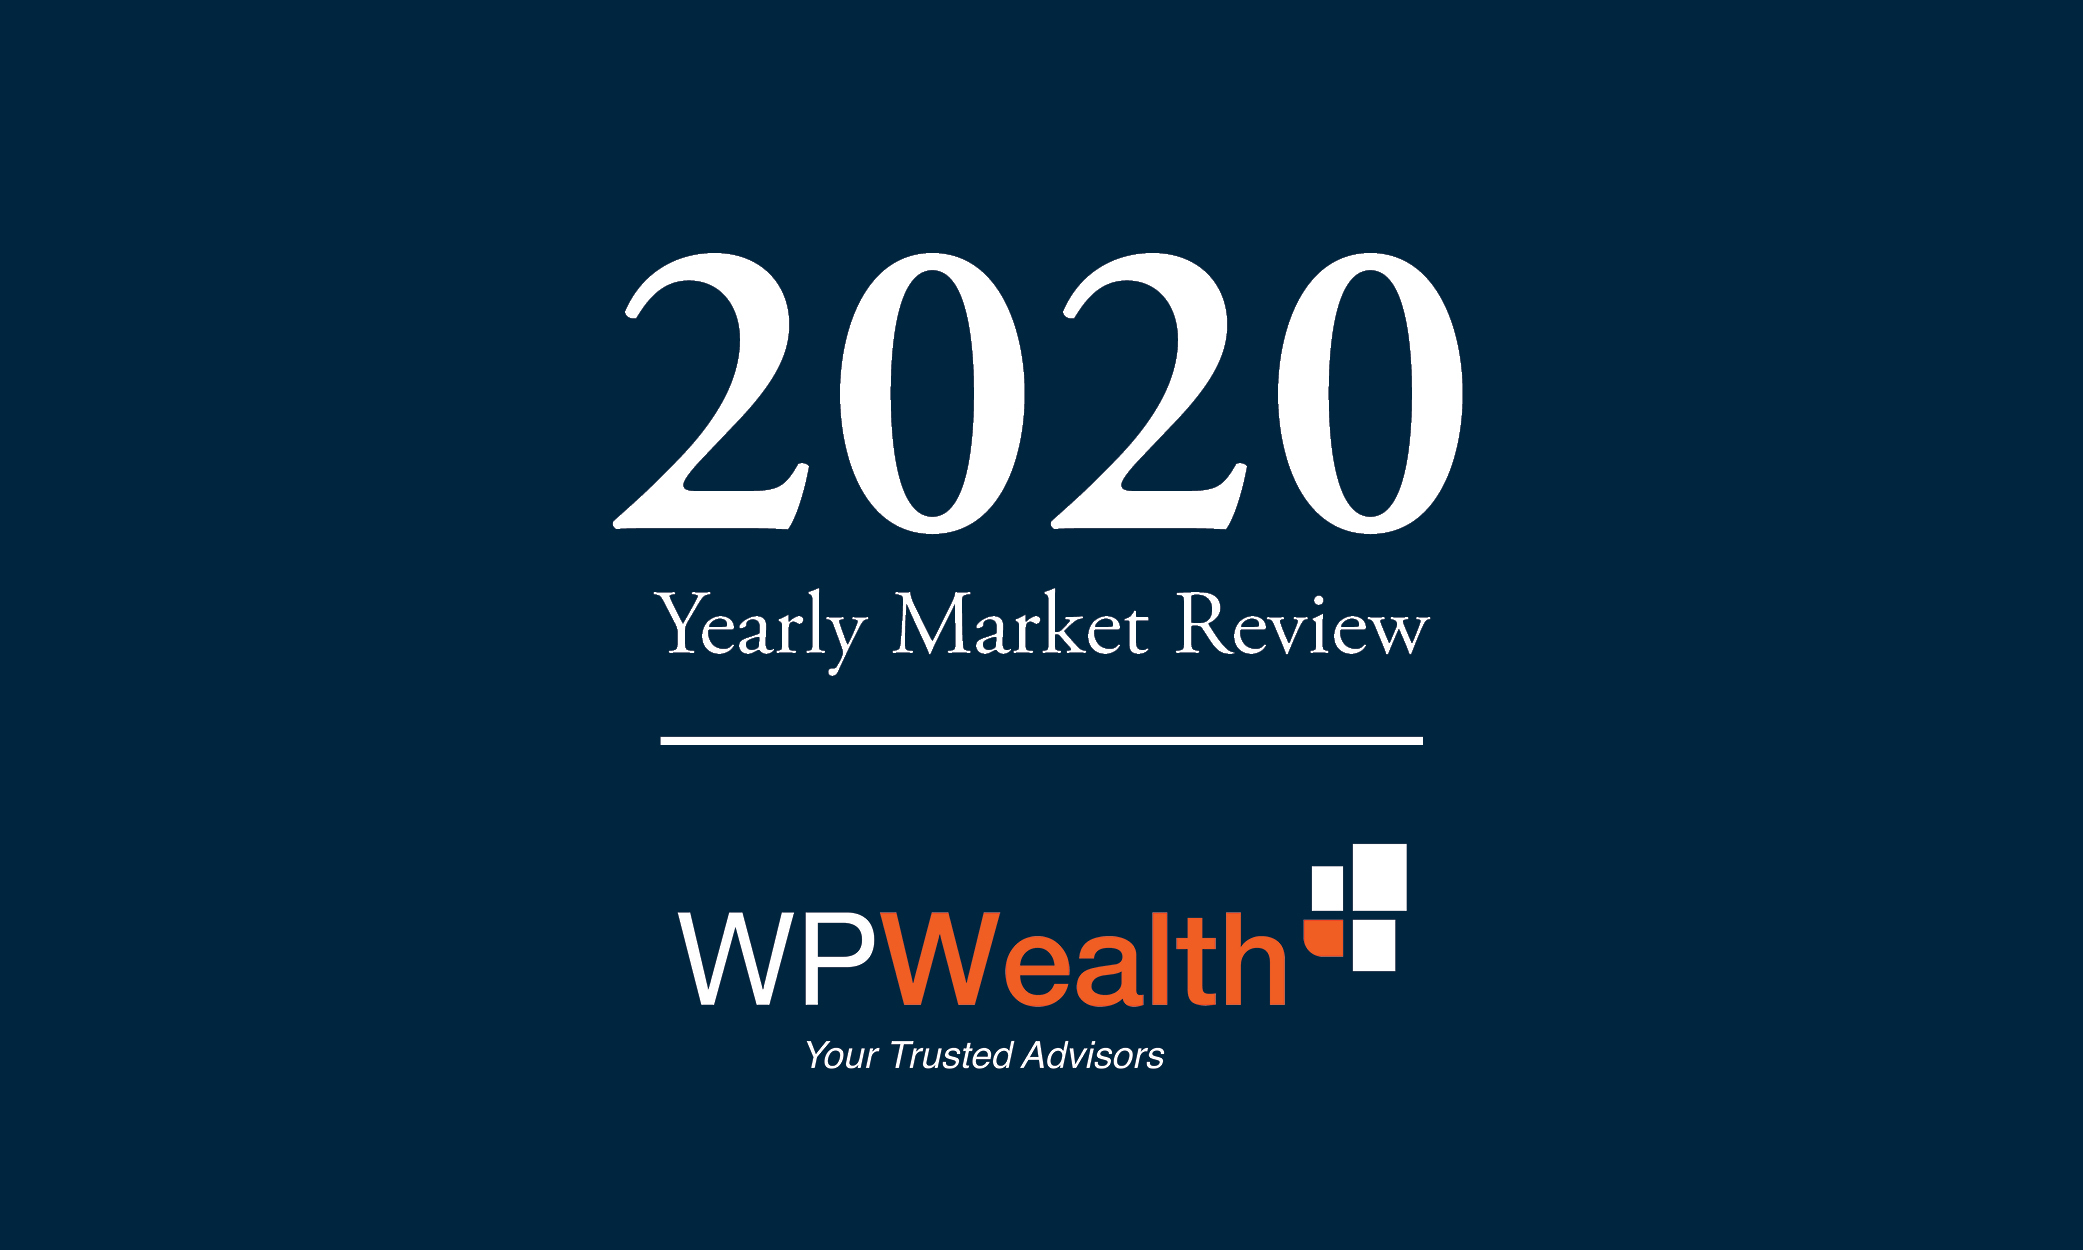 WPWealth Yearly Market Review 2020